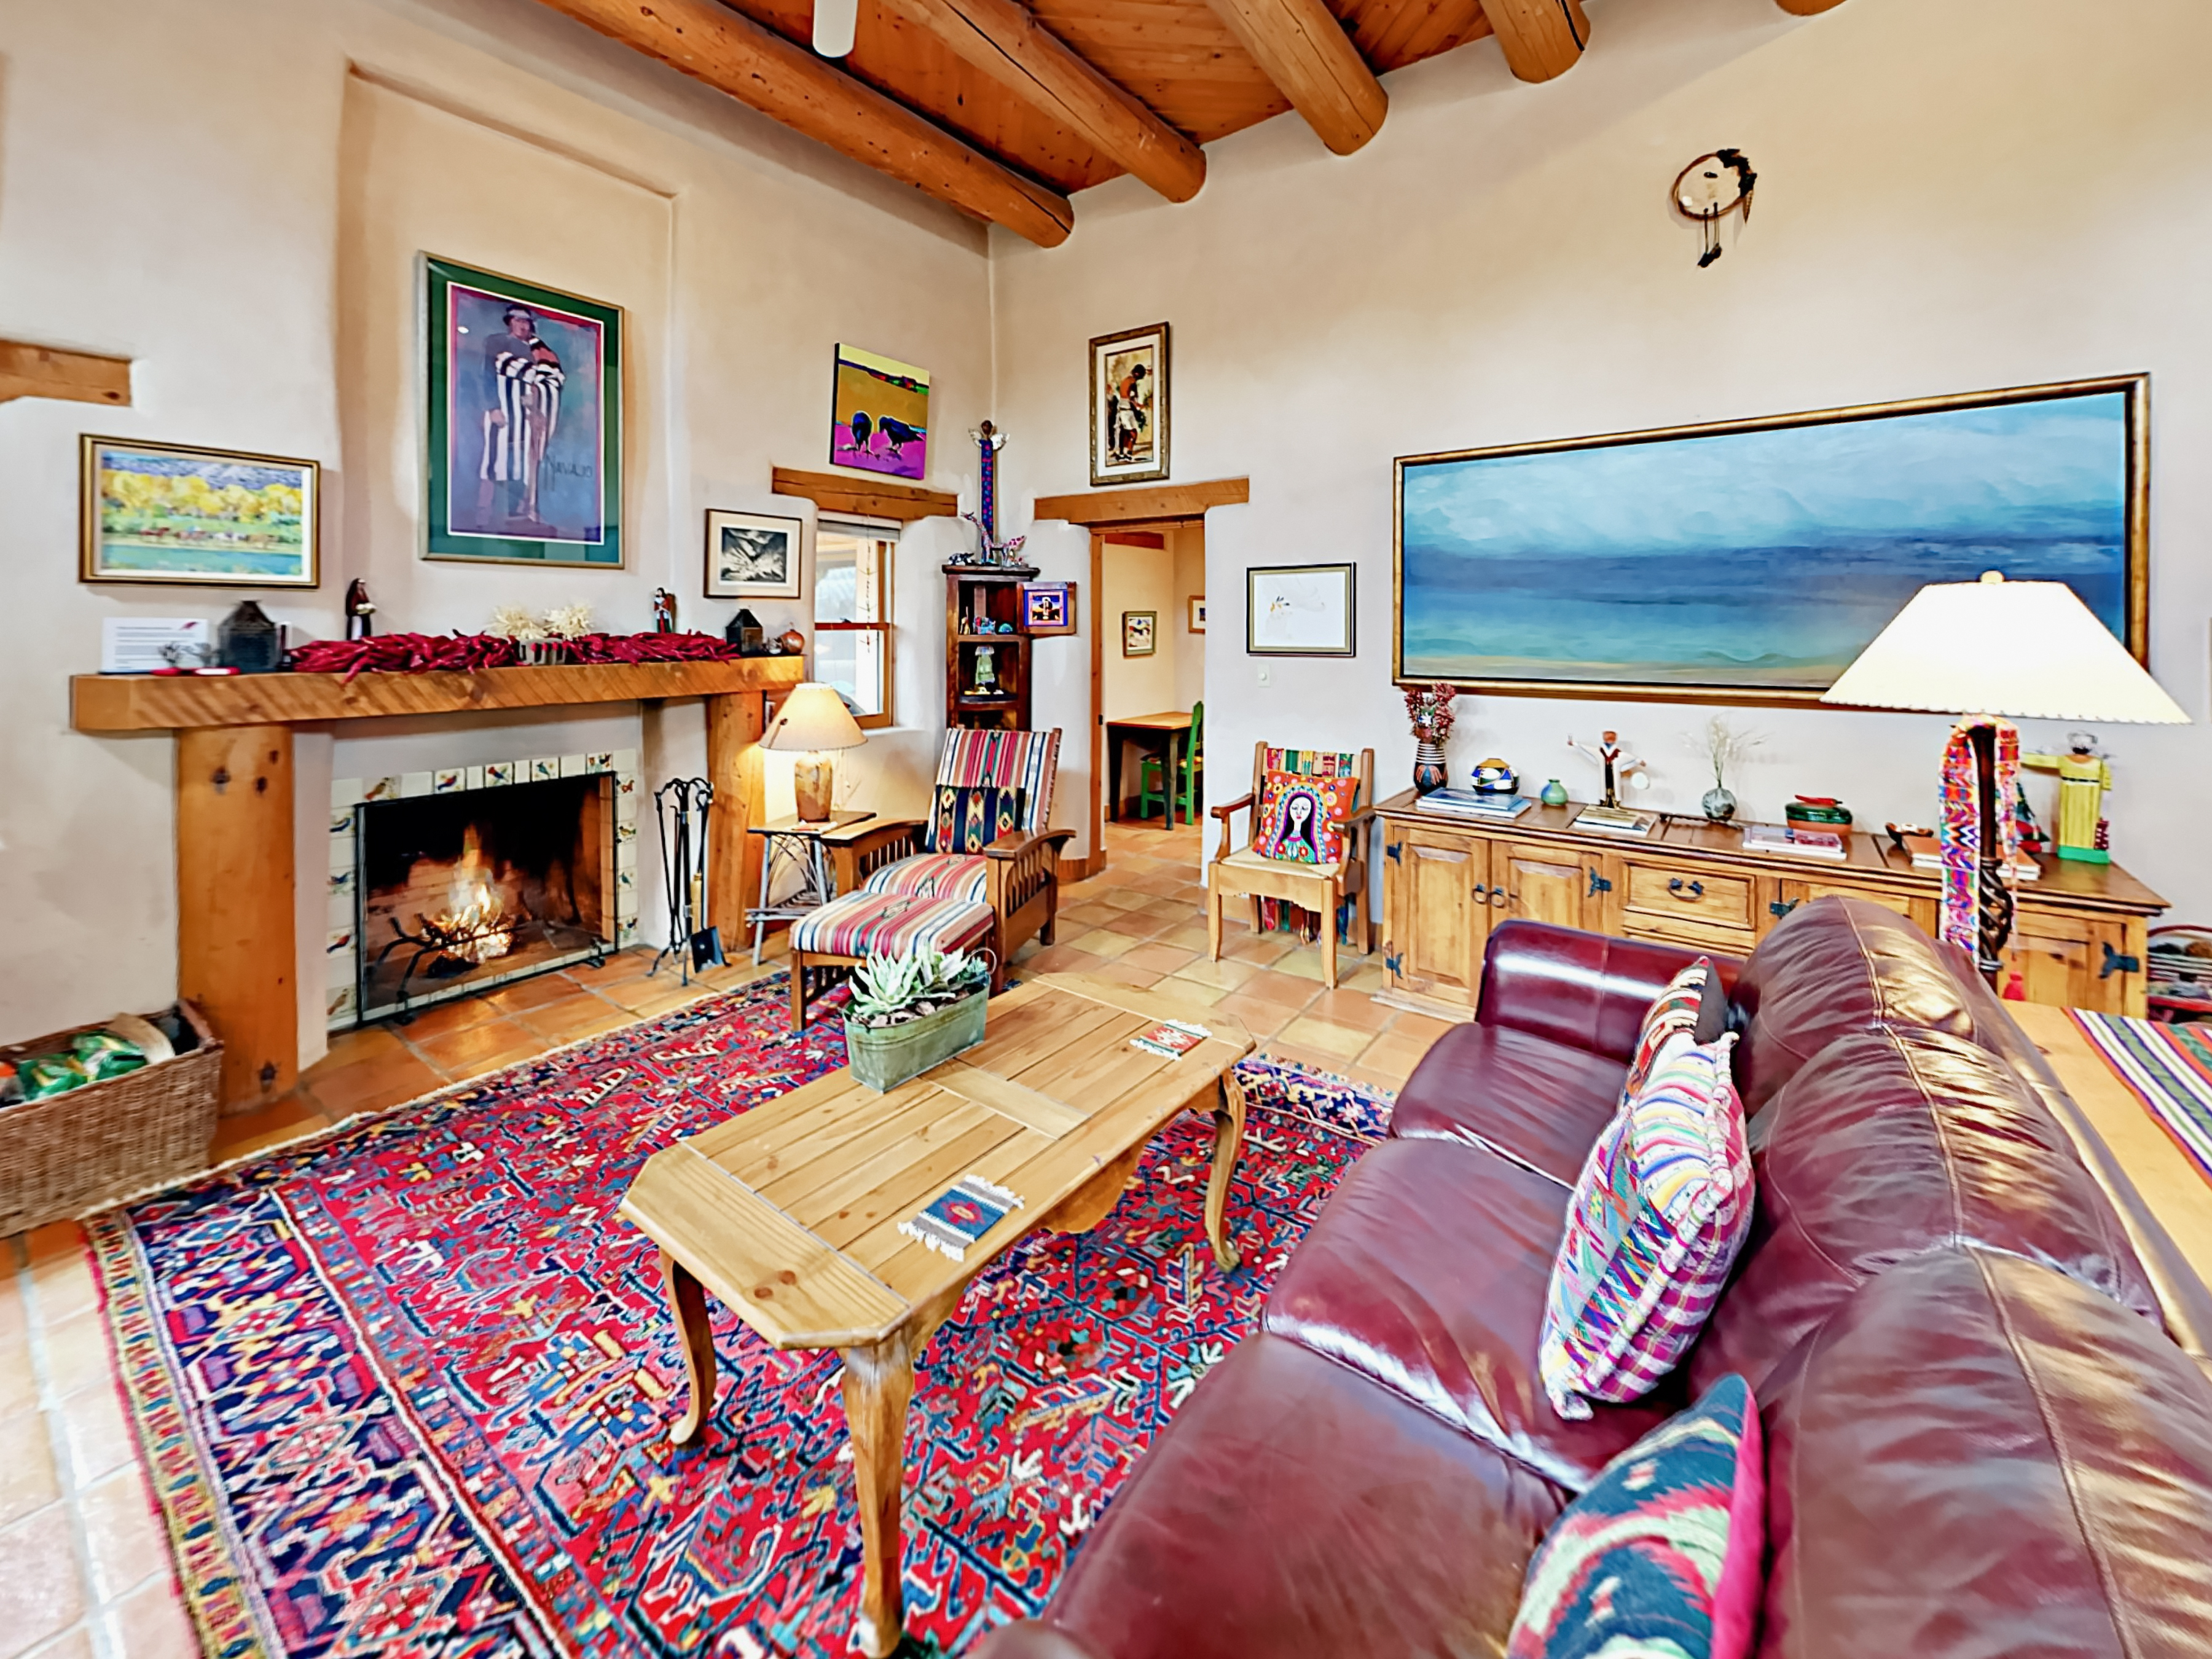 Taos NM Vacation Rental Welcome to Taos!